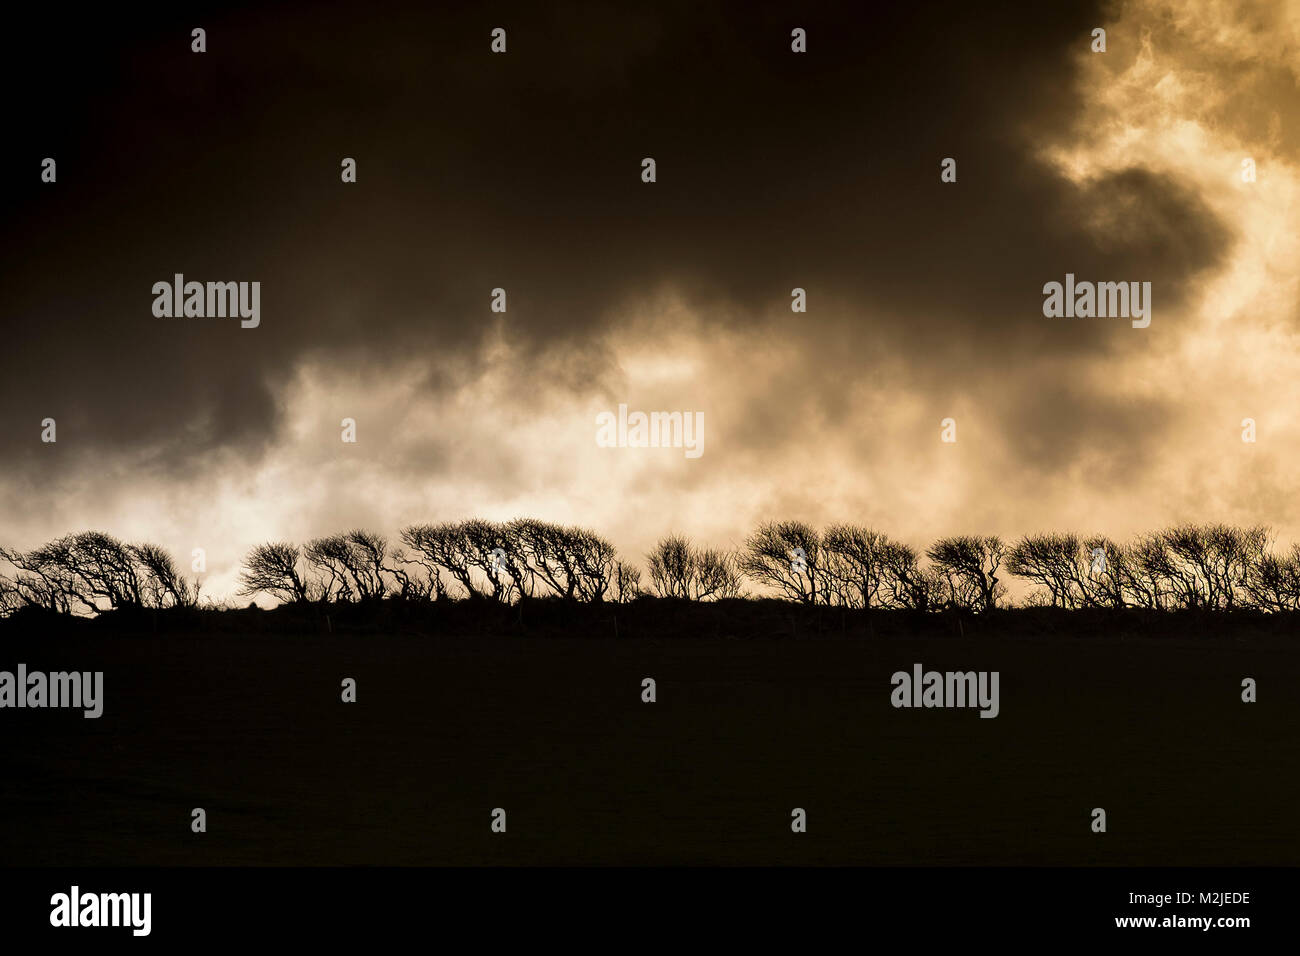 A hedgerow silhouetted against a dark moody sky. - Stock Image